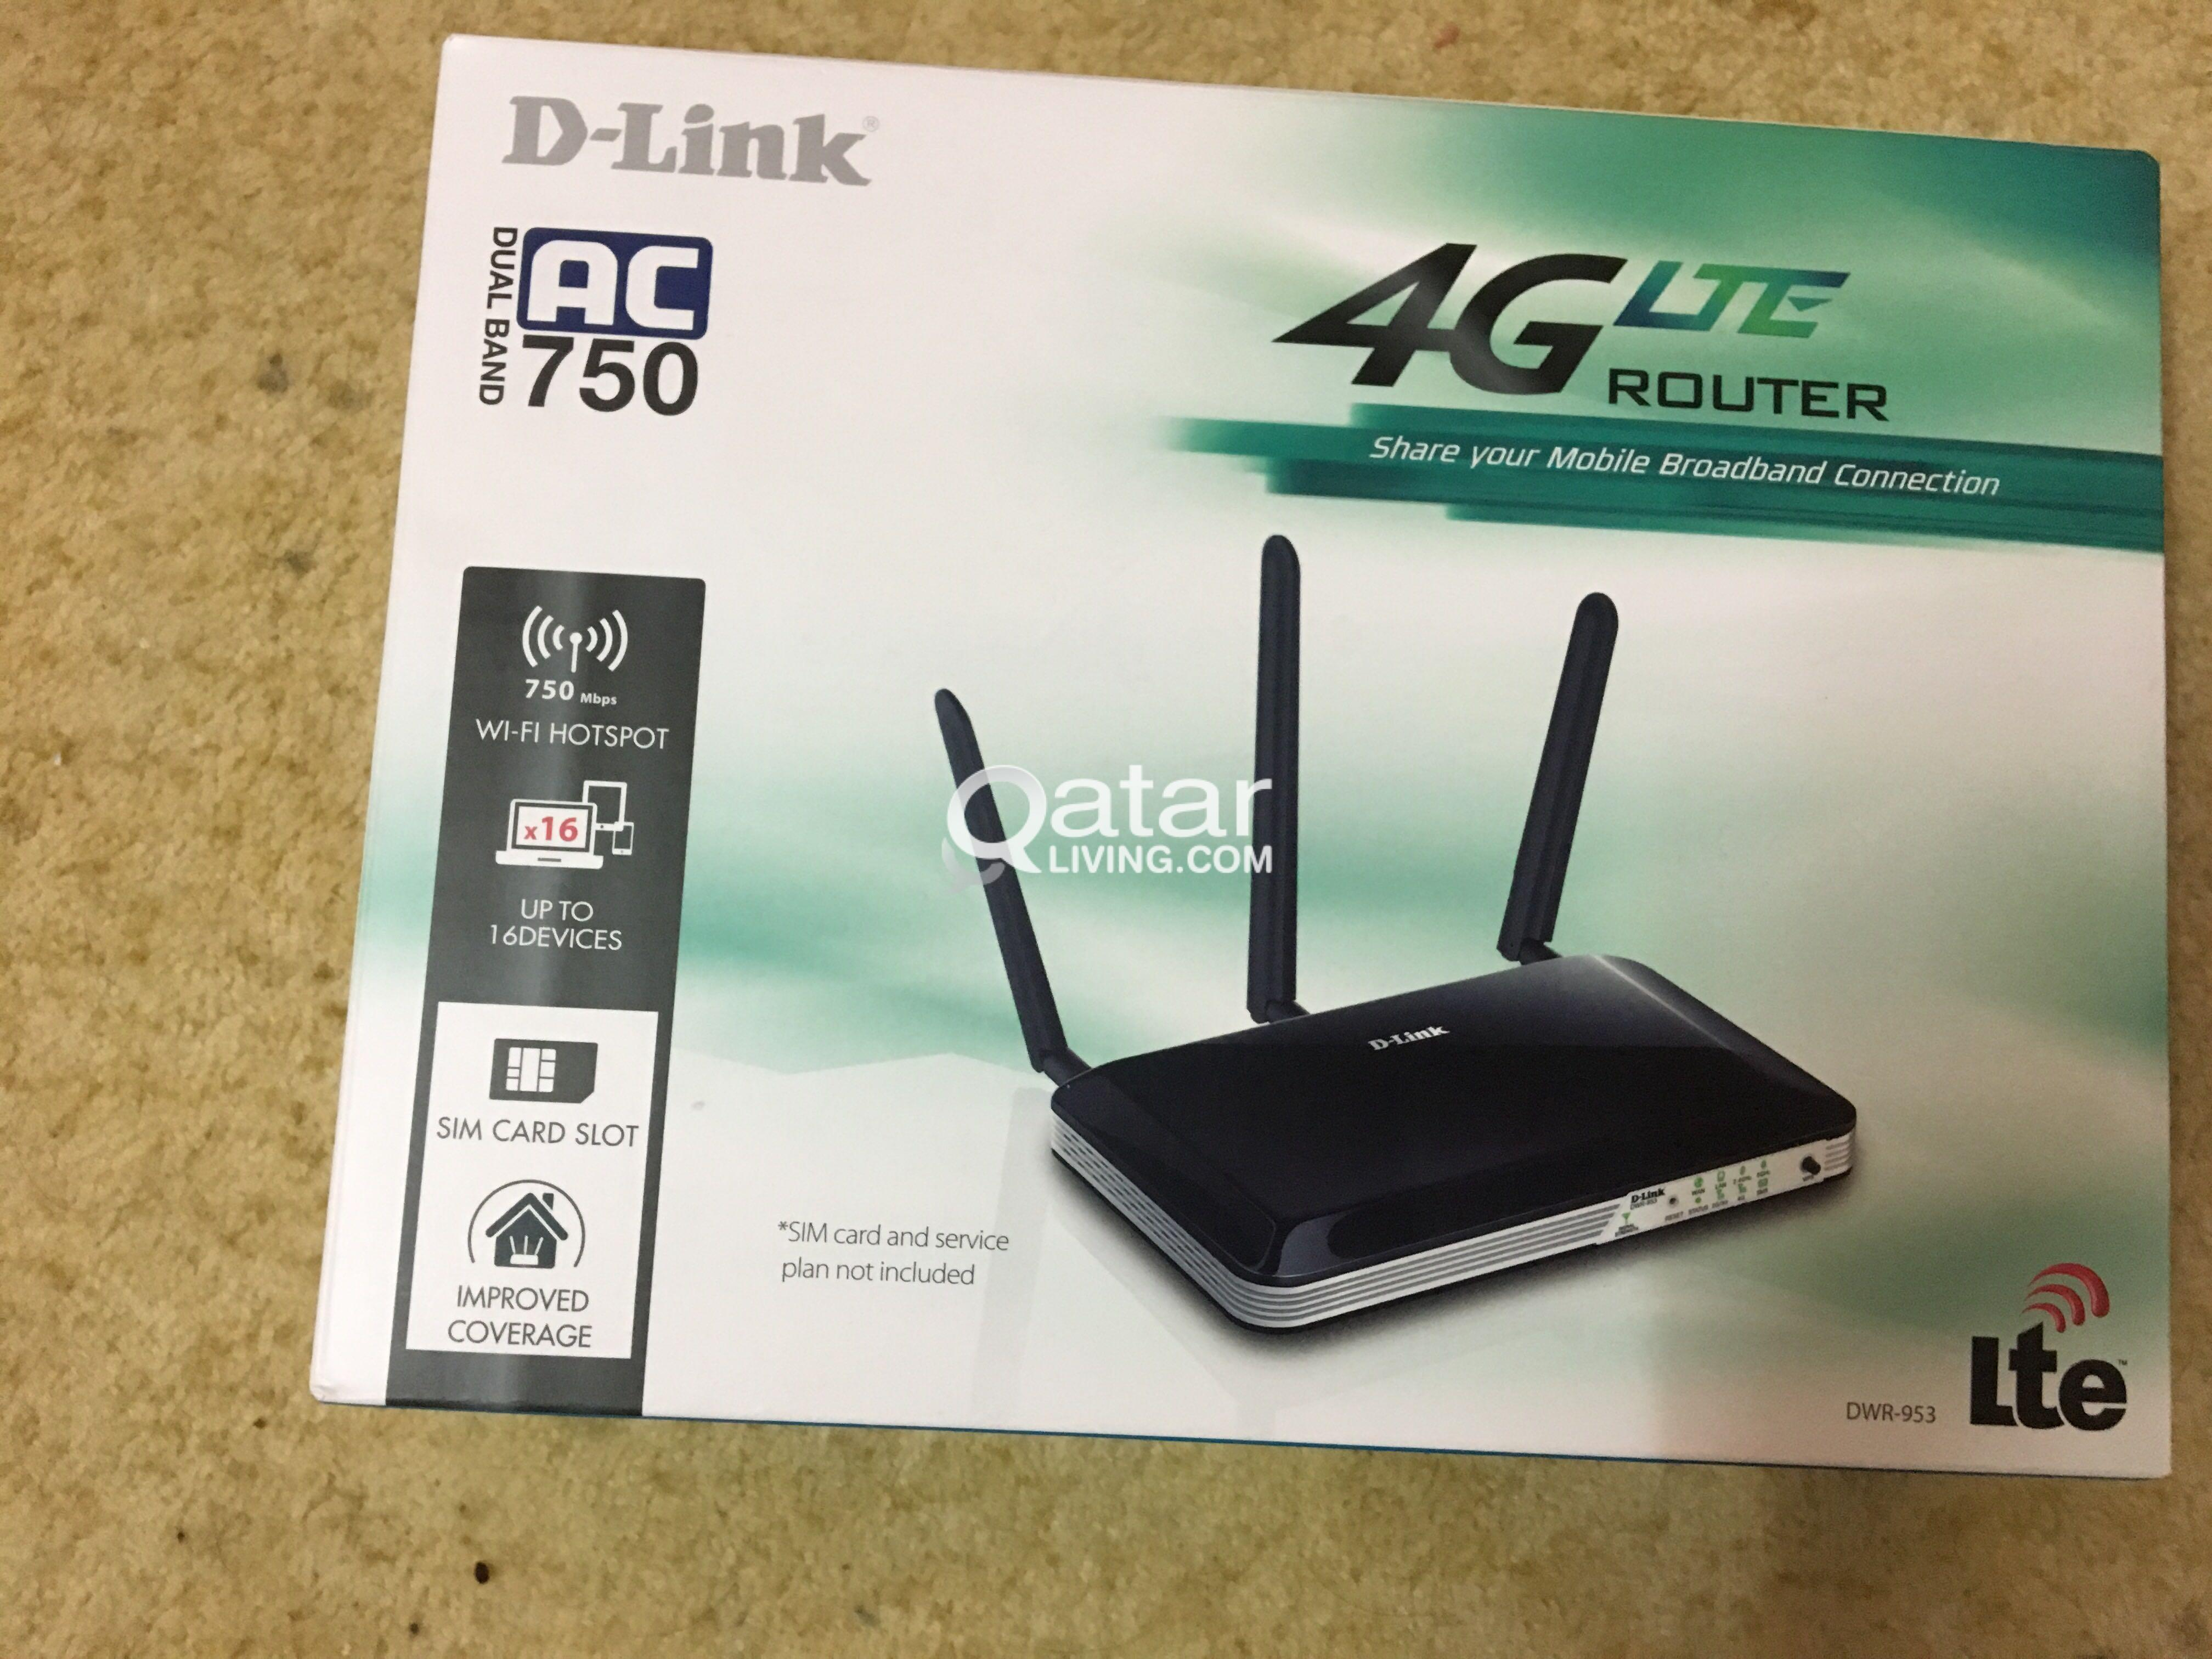 D-Link 4G Router for sale | Qatar Living